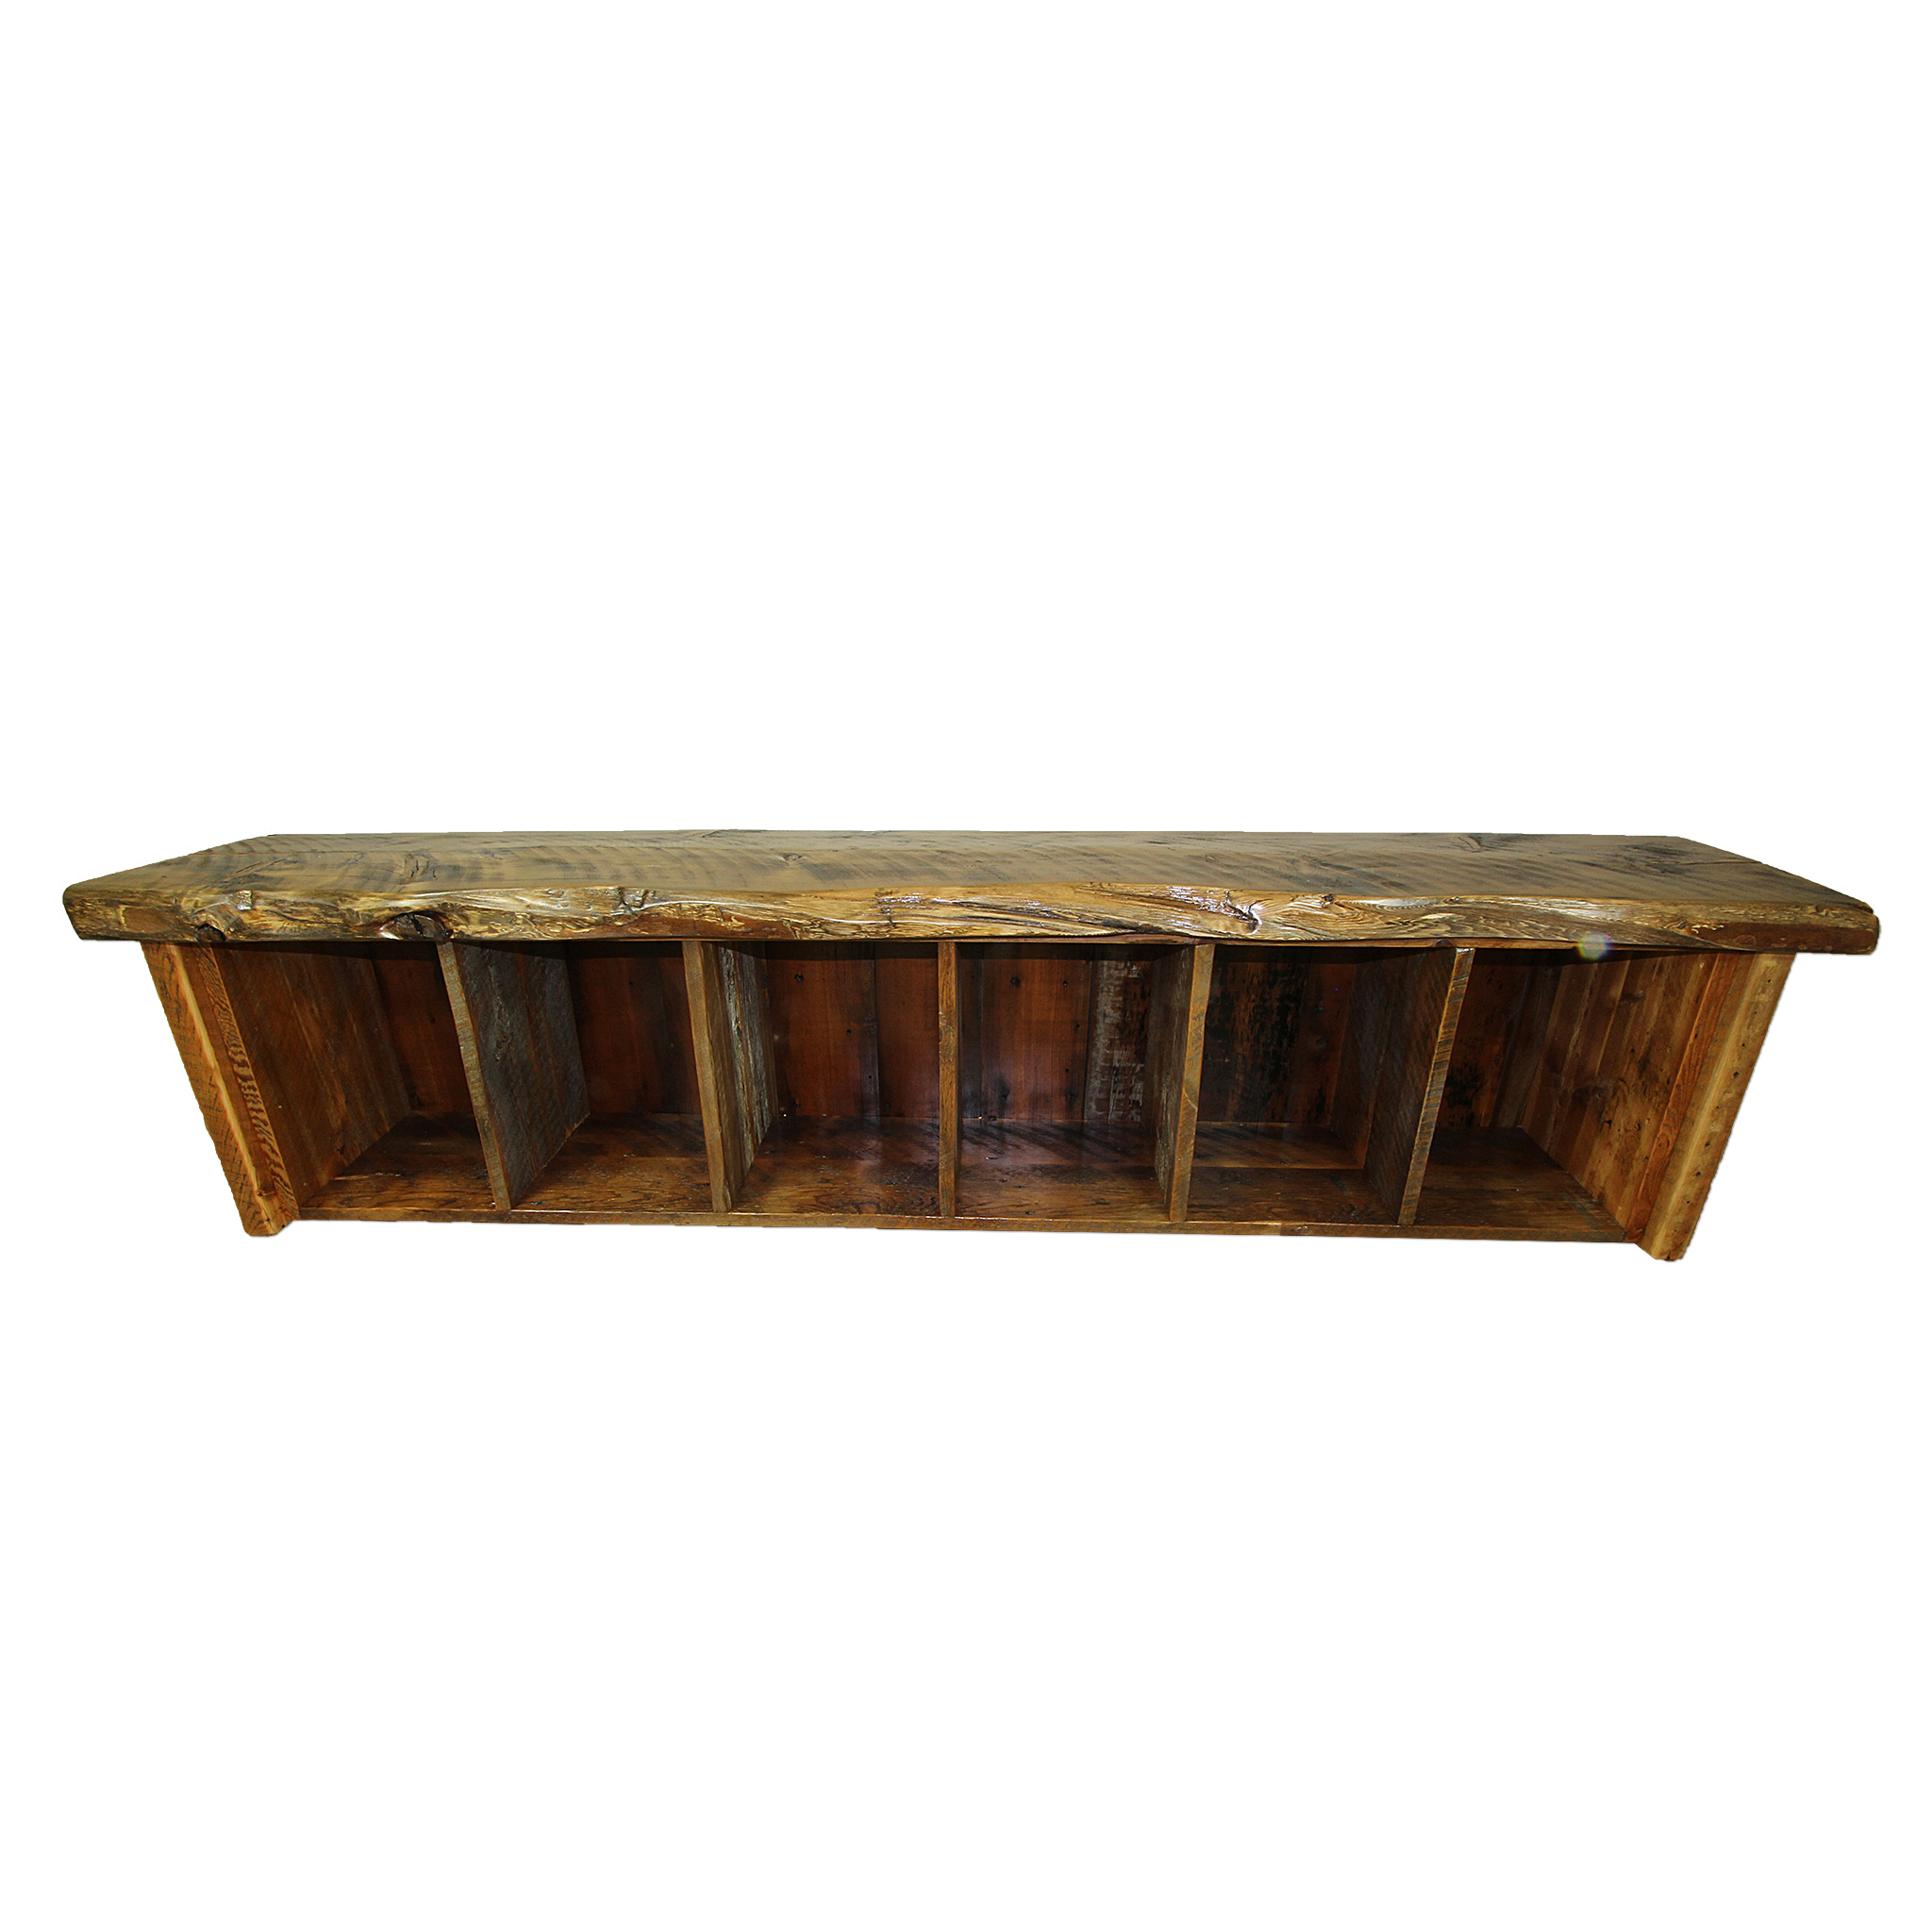 Admirable Live Edge Rustic Storage Bench Gmtry Best Dining Table And Chair Ideas Images Gmtryco